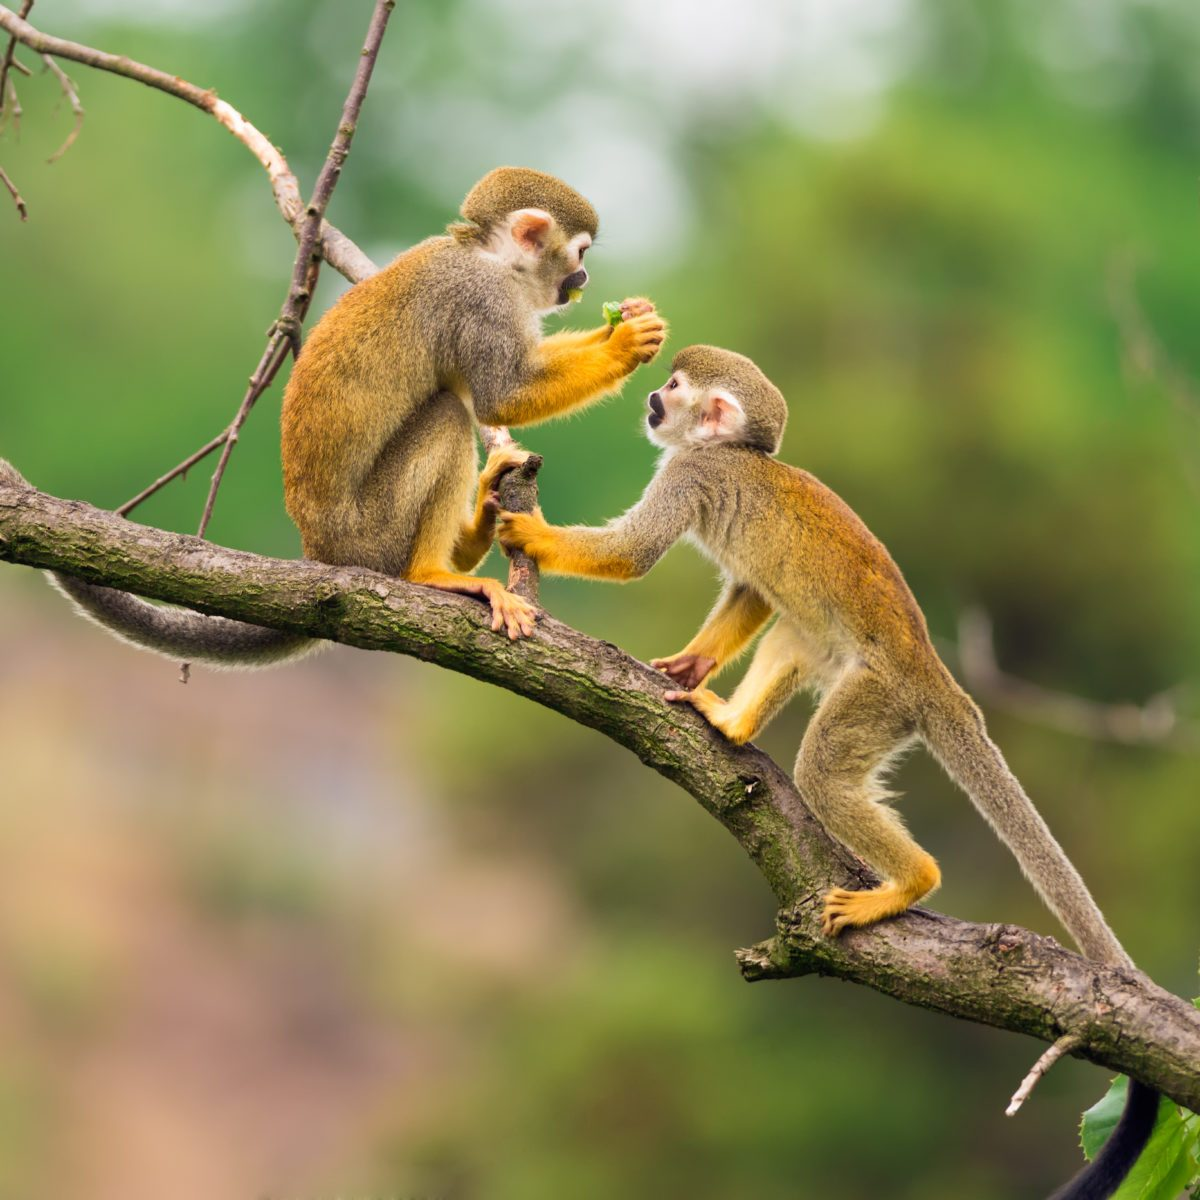 How Many Types of Monkeys Are There in the World?